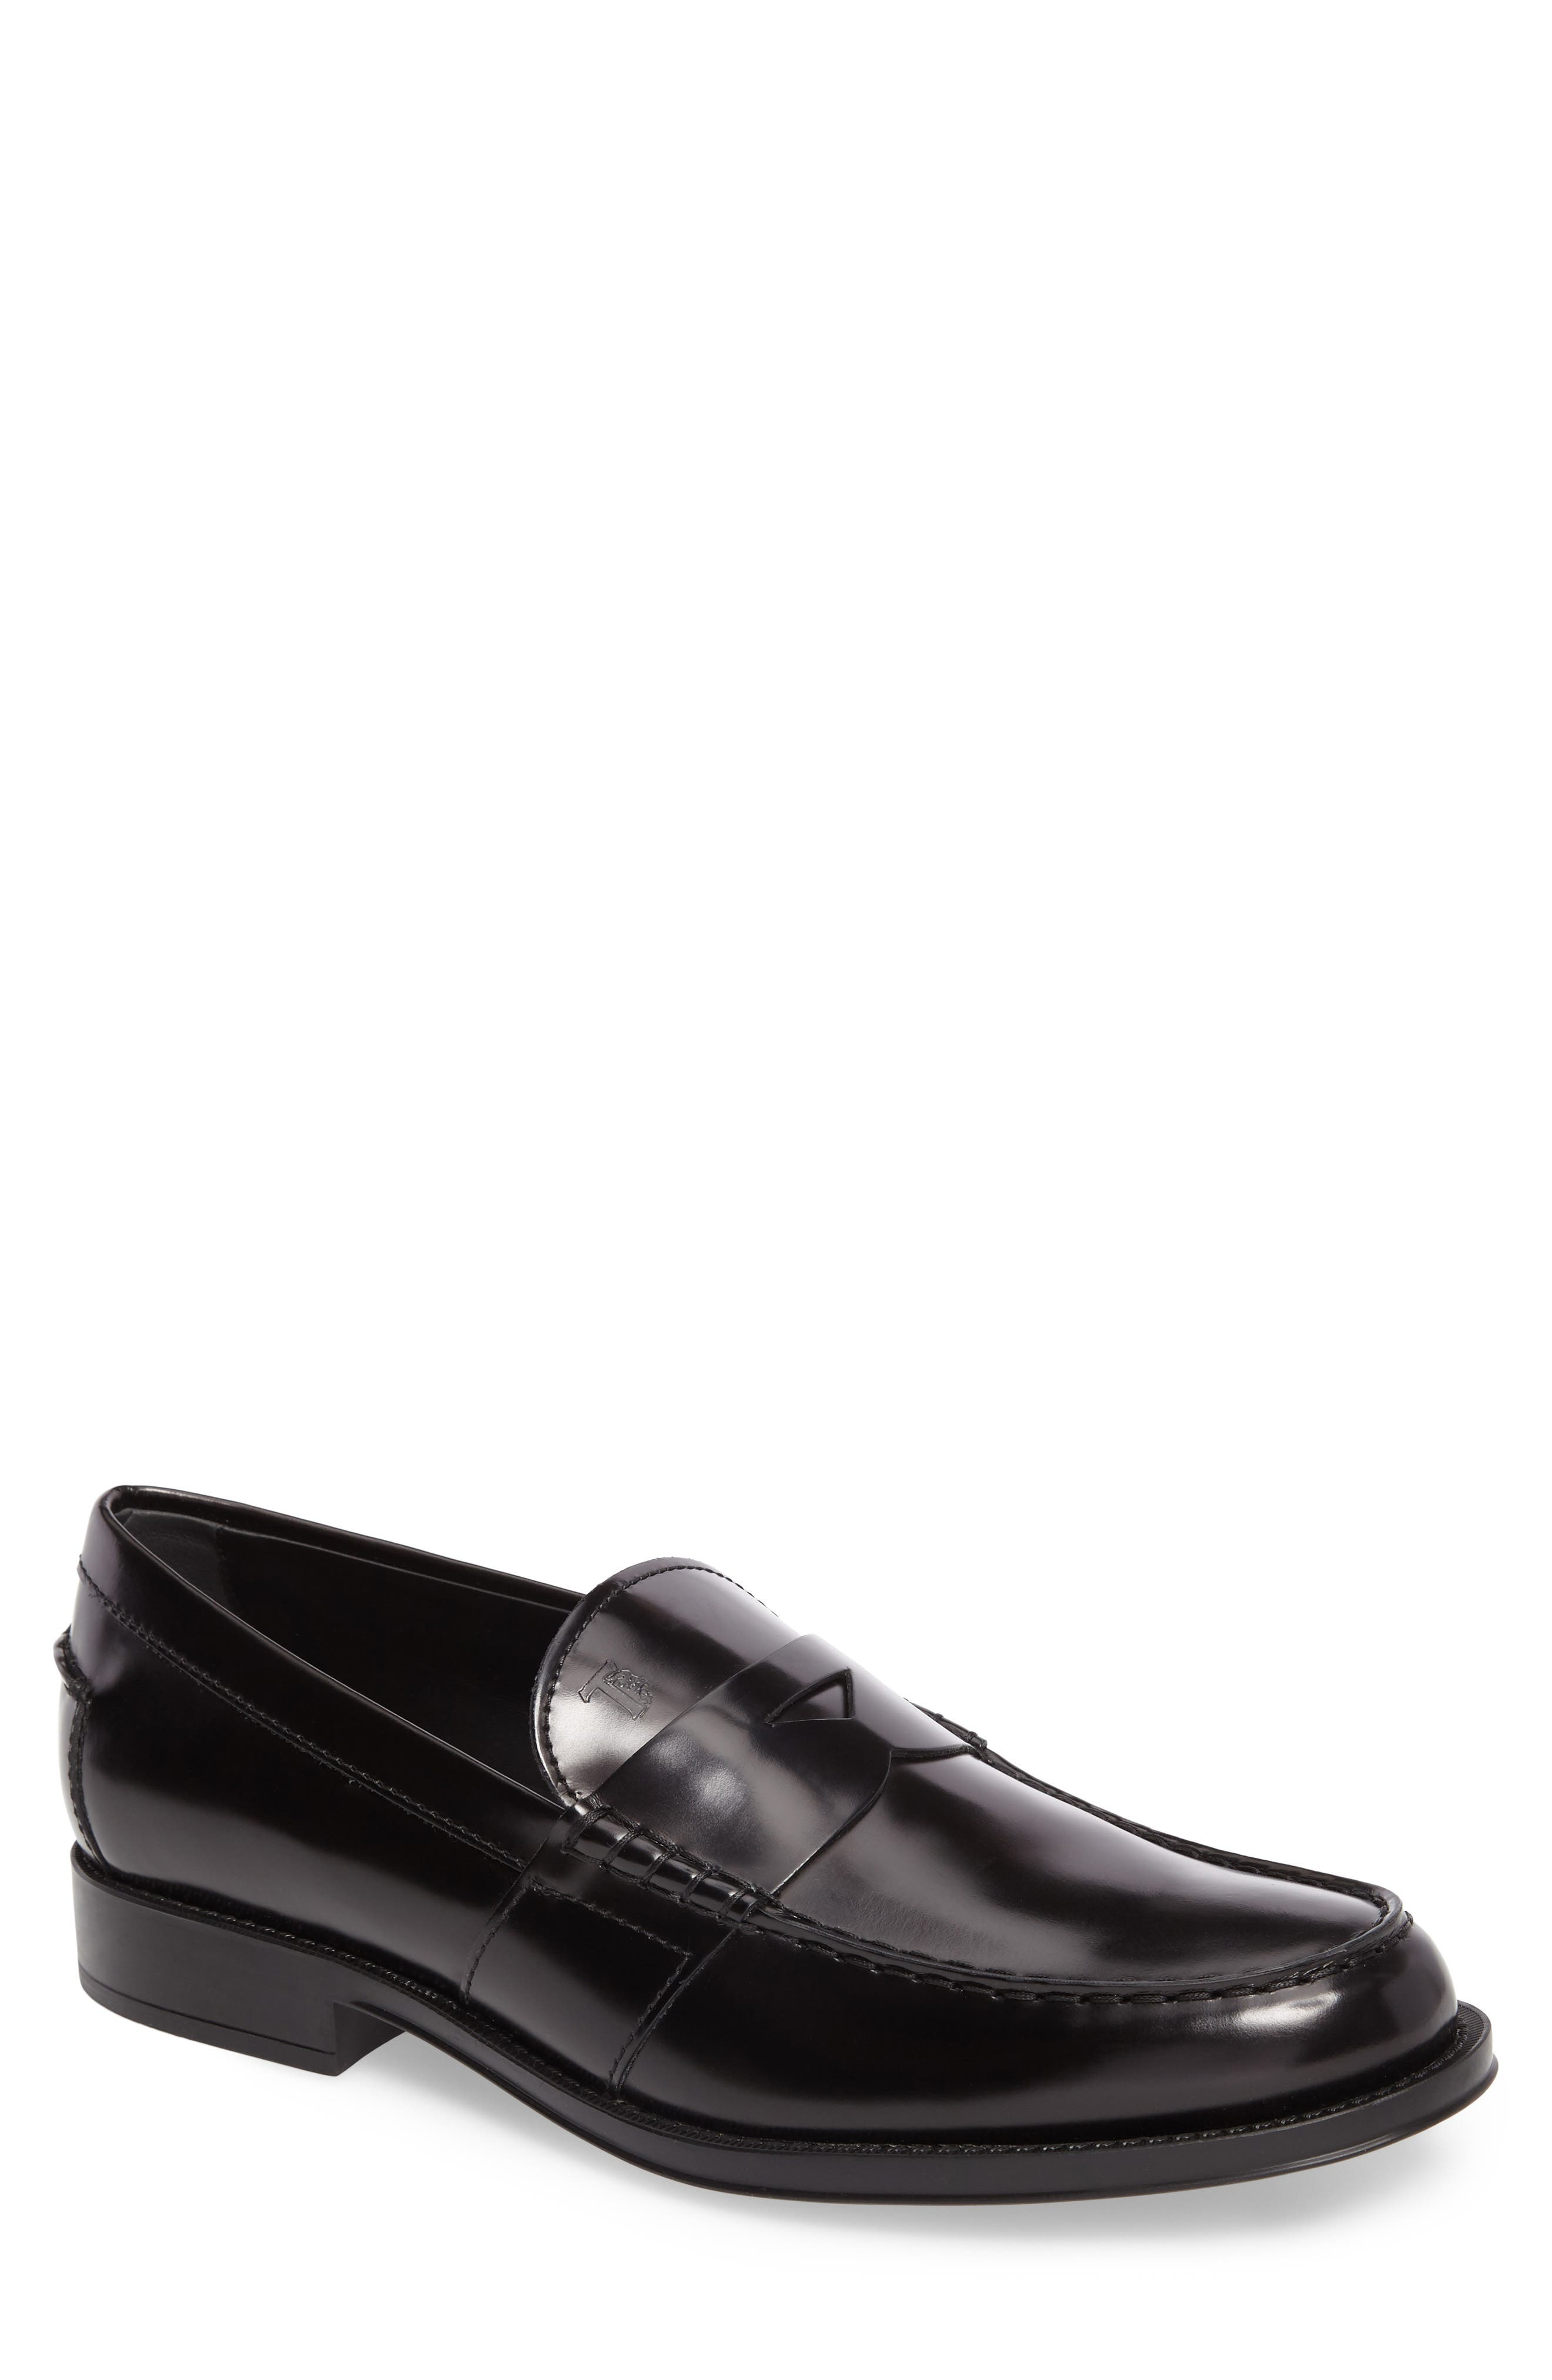 Tods Penny Loafer,                         Main,                         color, 001